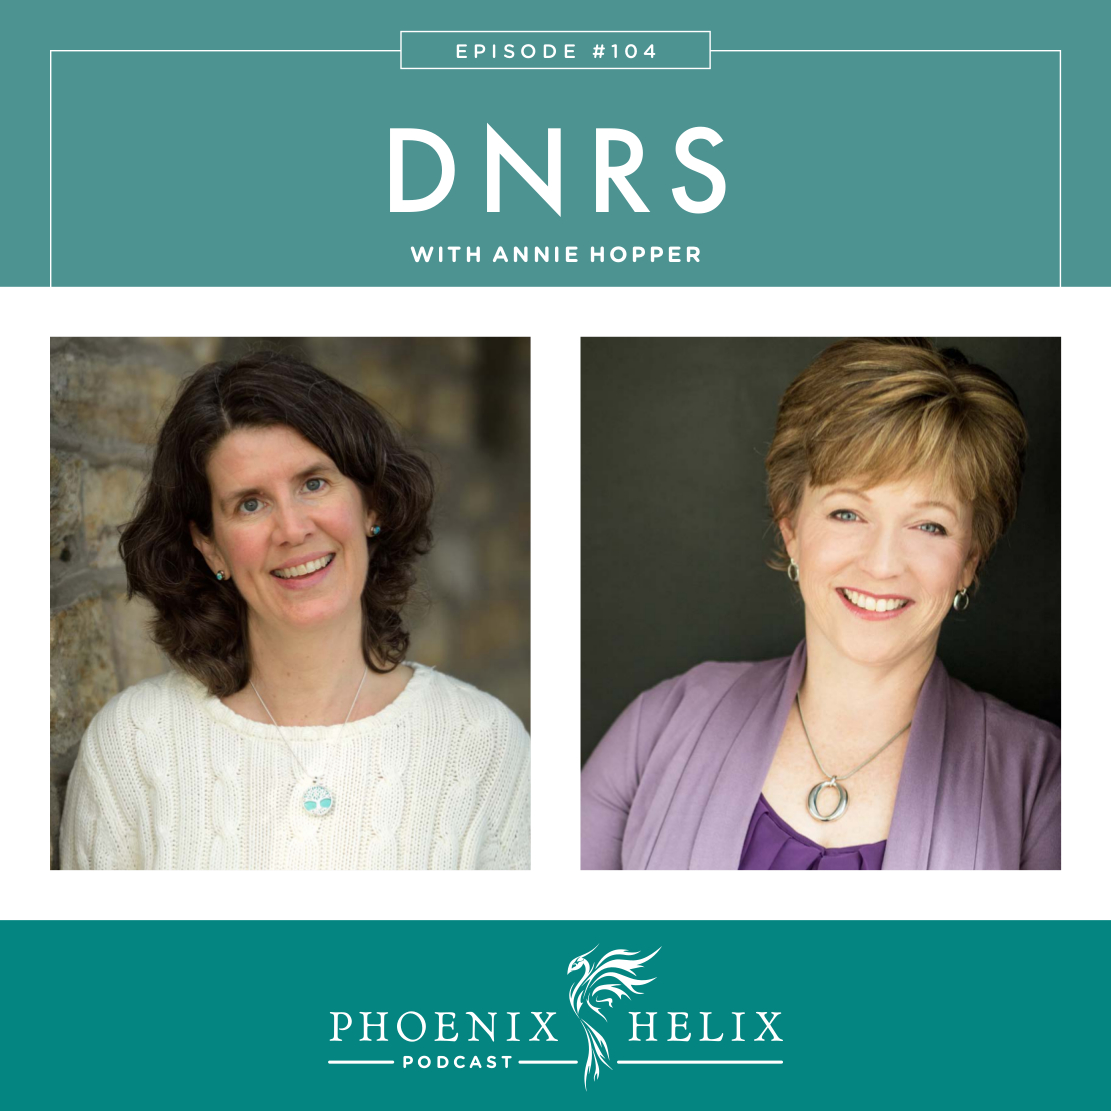 Best of the Phoenix Helix Podcast: DNRS with Annie Hopper